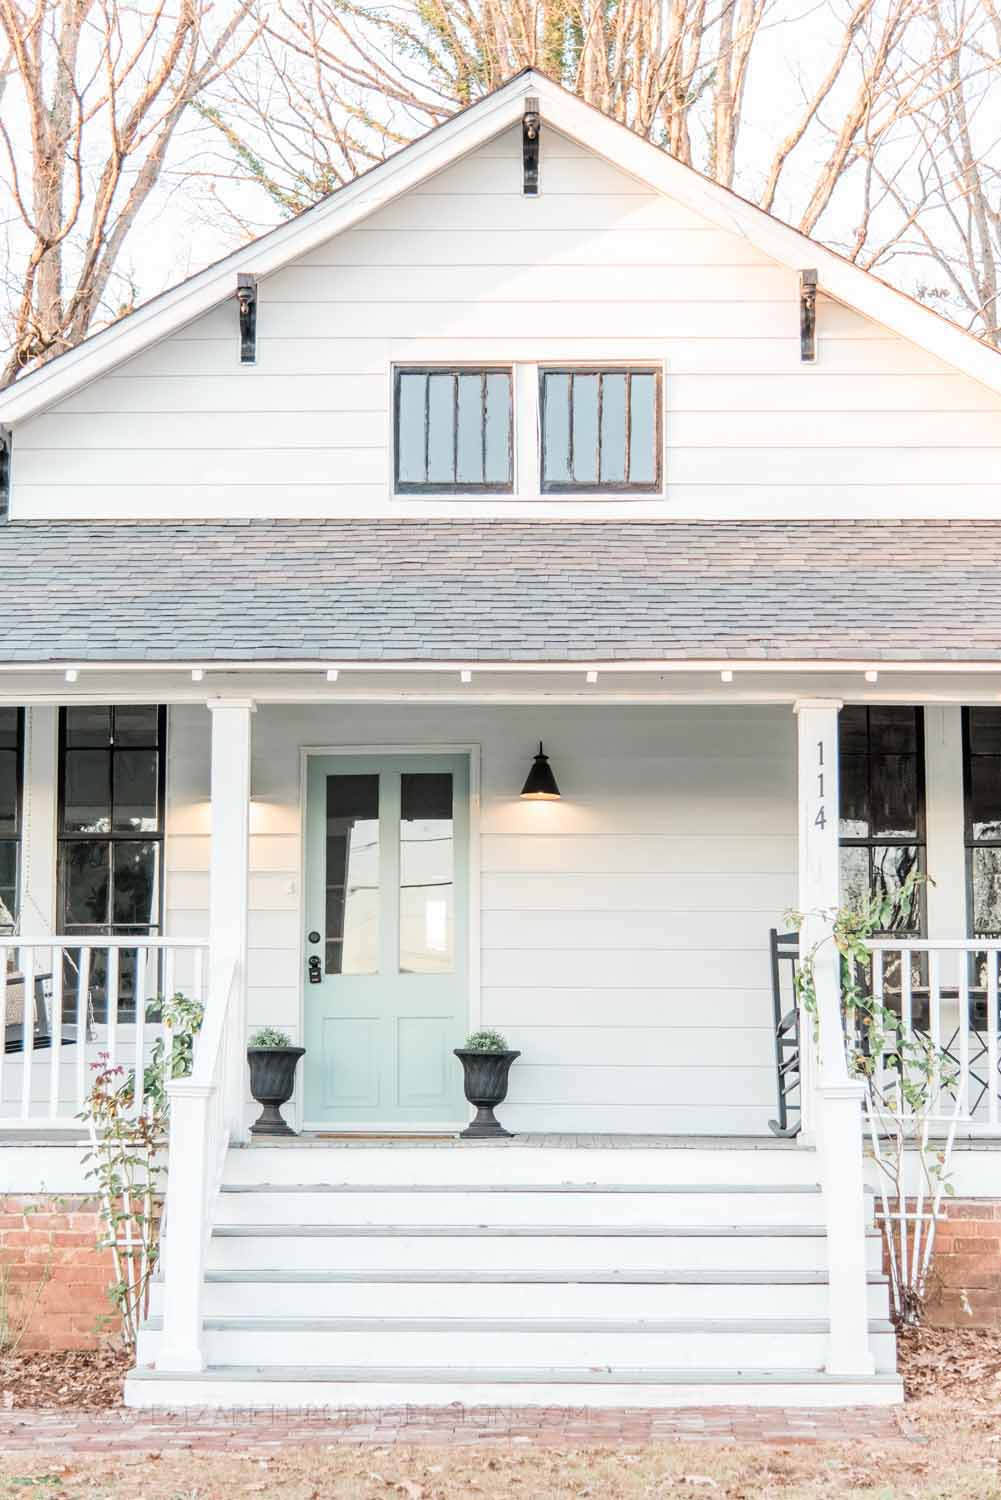 Elizabeth Burns Design Raleigh Interior Designer  Farmhouse Fixer Upper Cottage Renovation, Benjamin Moore Wythe Blue Front Door Front Porch Curb Appeal (8).jpg